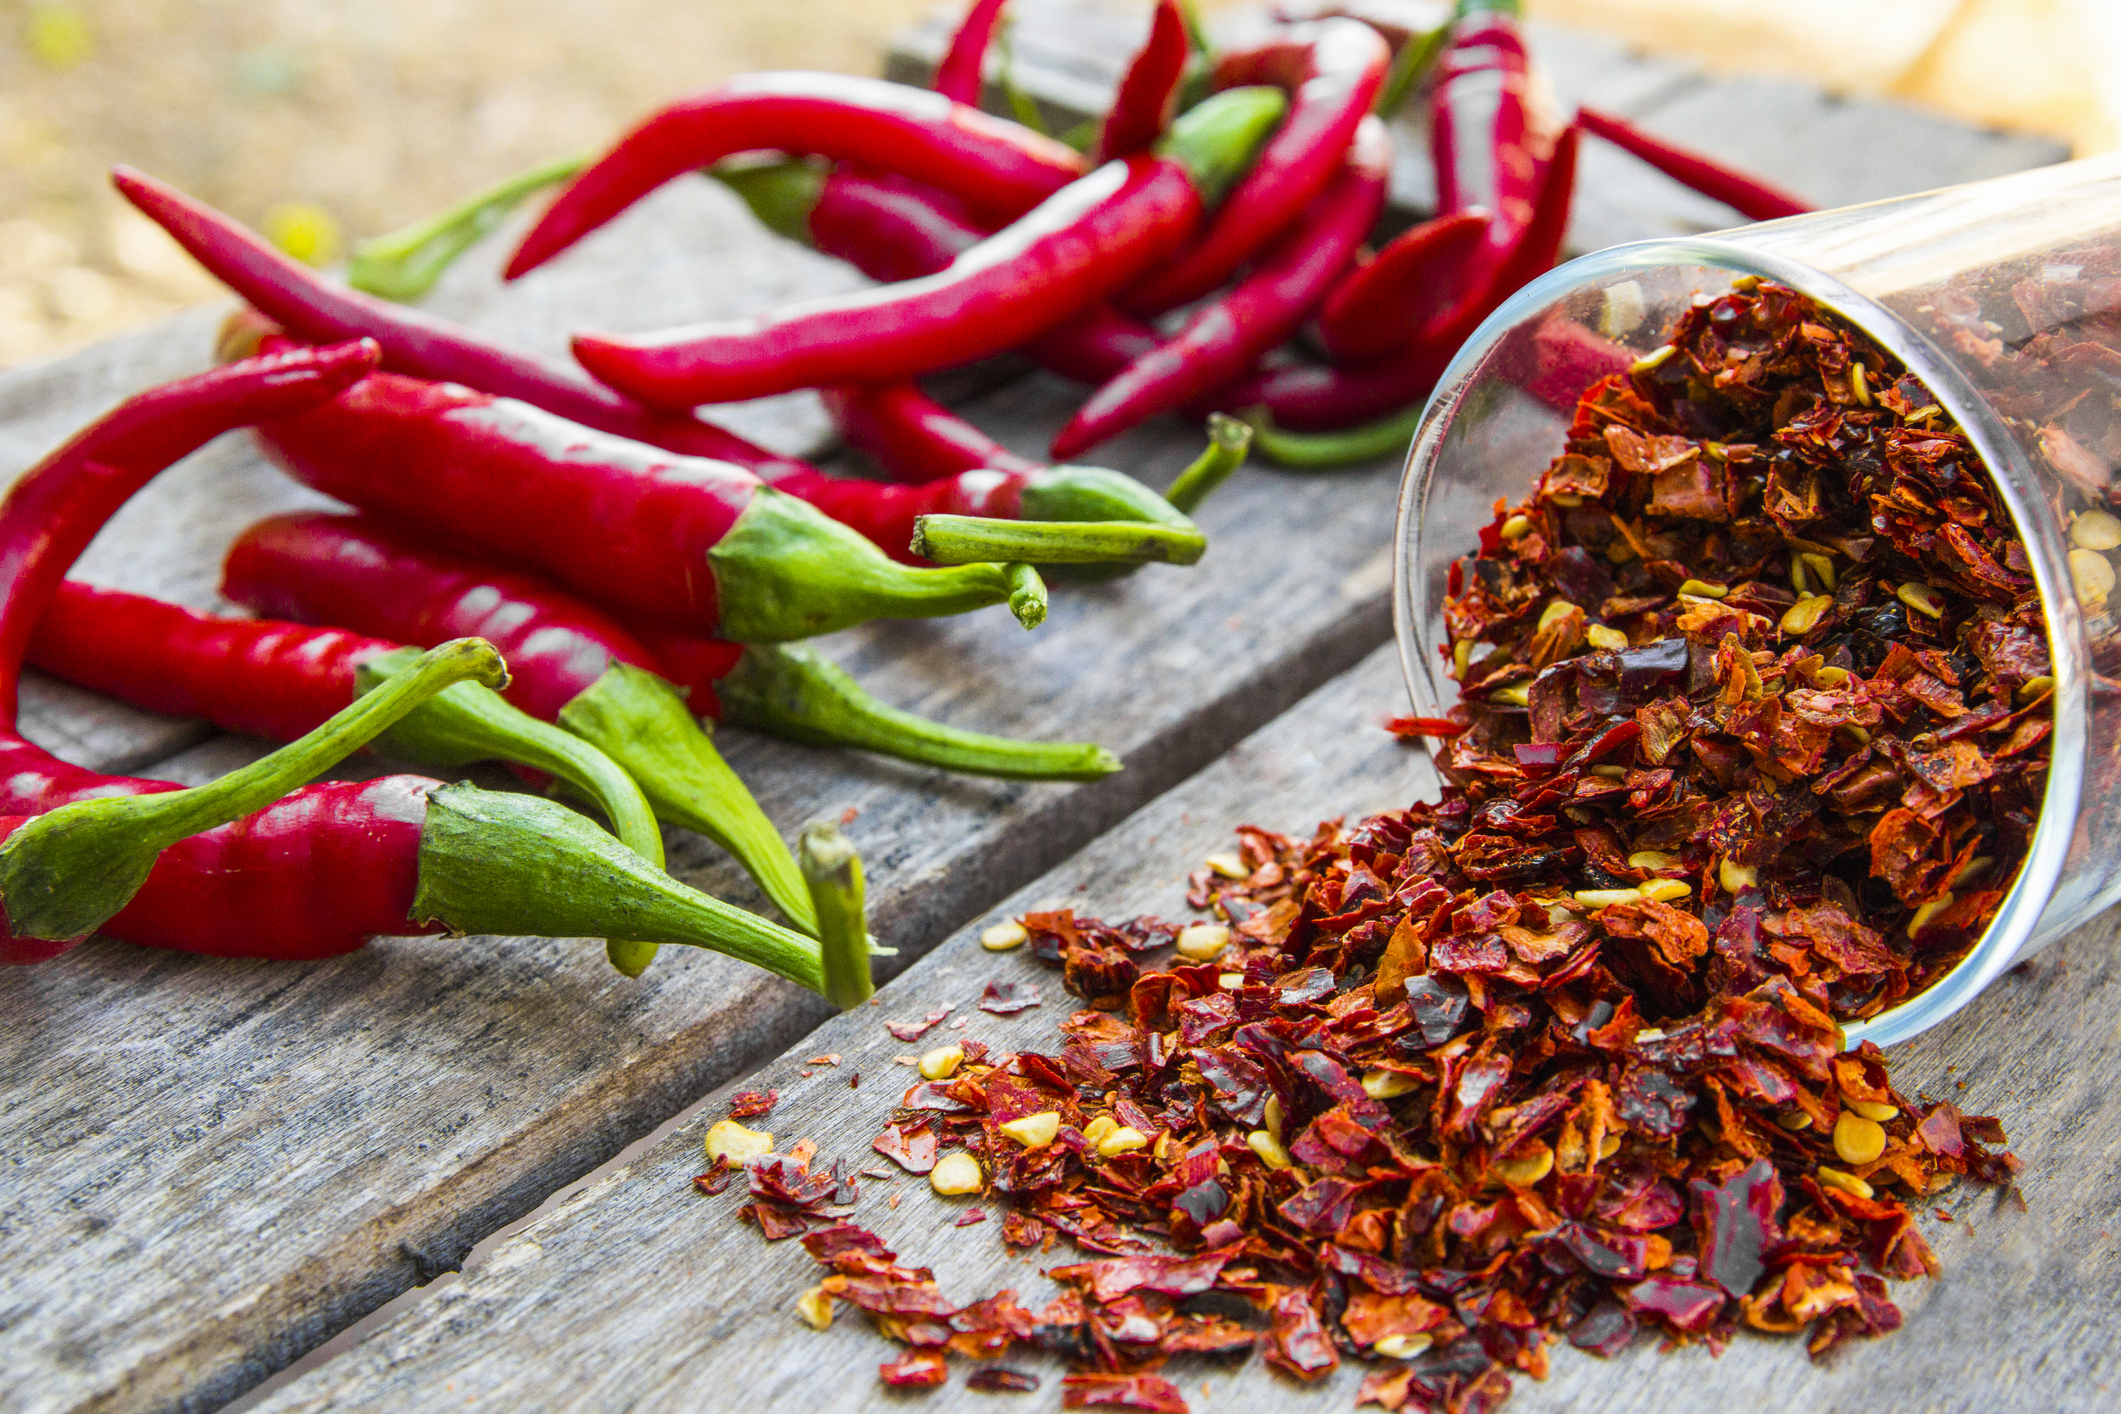 3 ways chili peppers could help you live longer and healthier